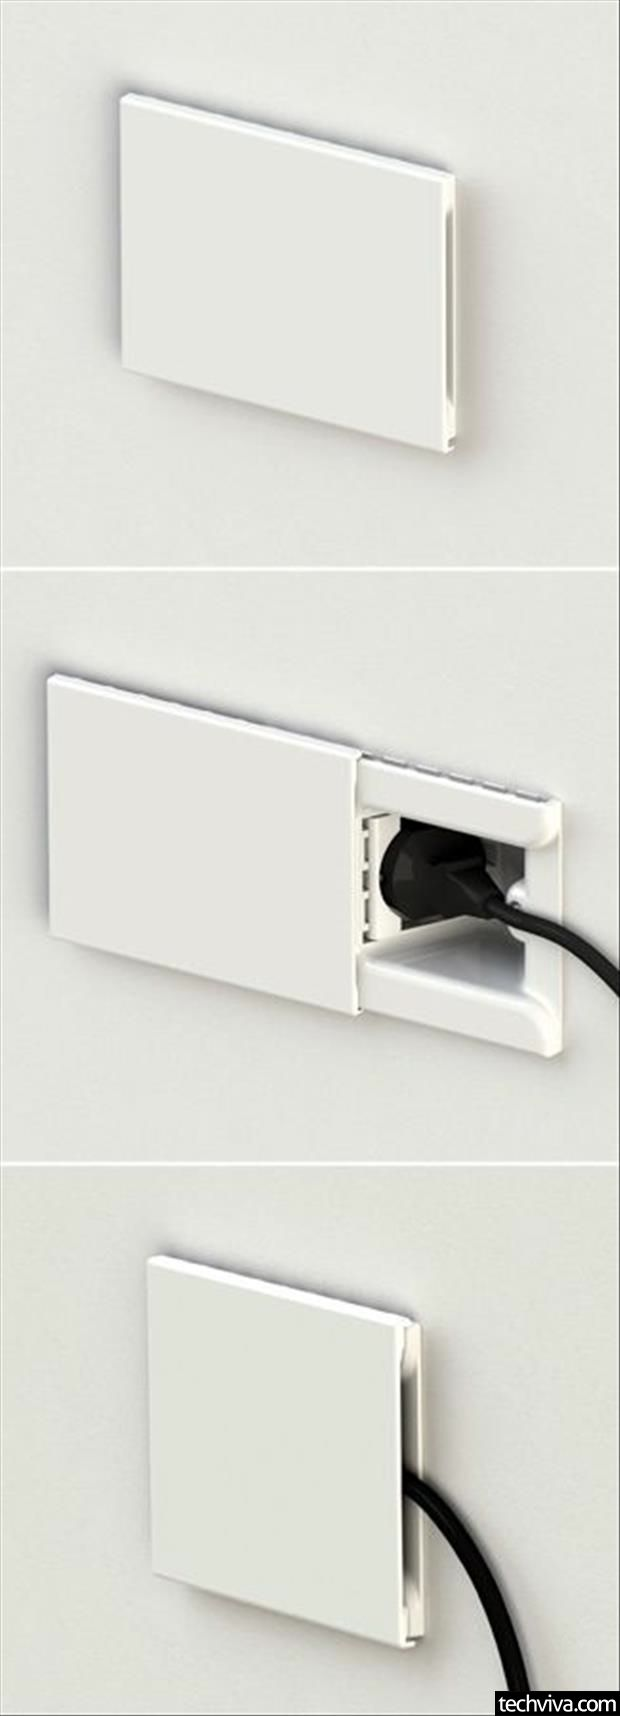 1000 images about hide electrical cords on pinterest for How to hide electrical cords on wall